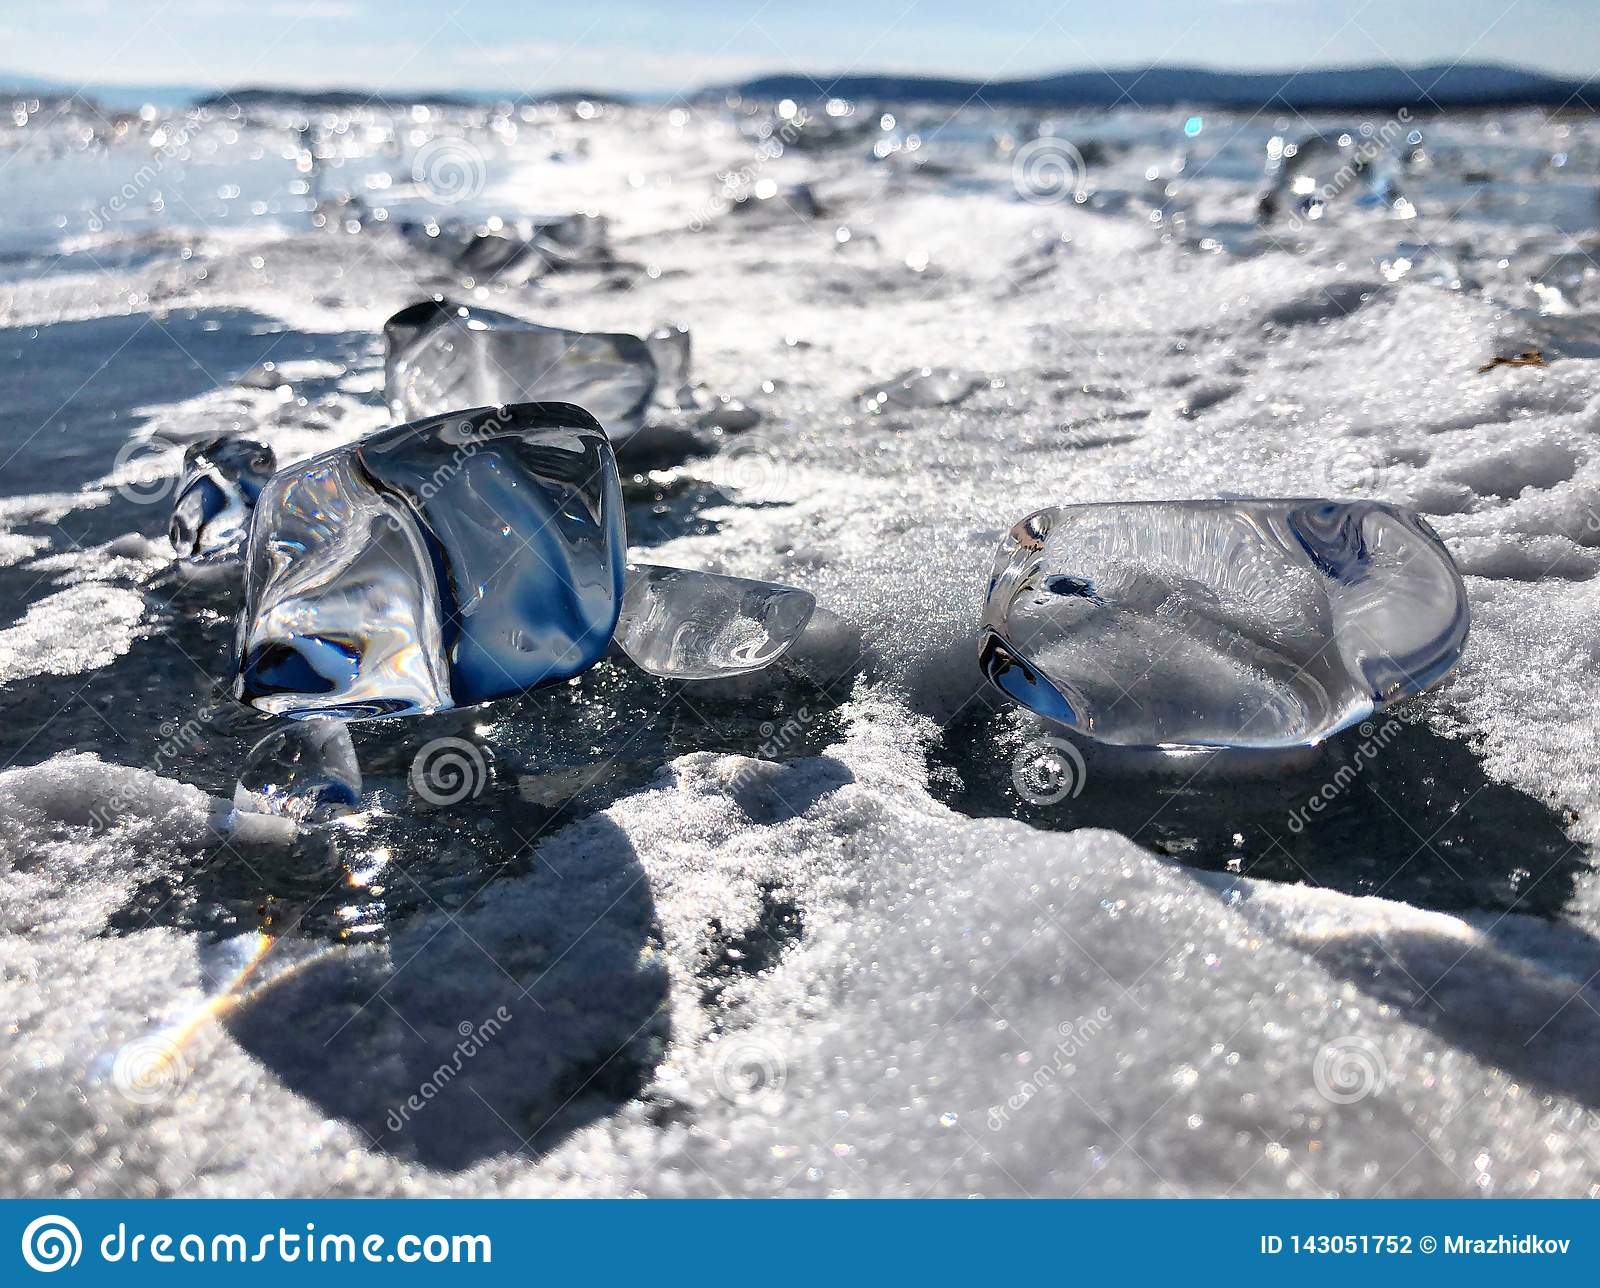 Shiny ice cubes.Evening view. Cracks on the surface of the blue ice. Frozen lake Baikal in winter mountains. It is snowing. The hi